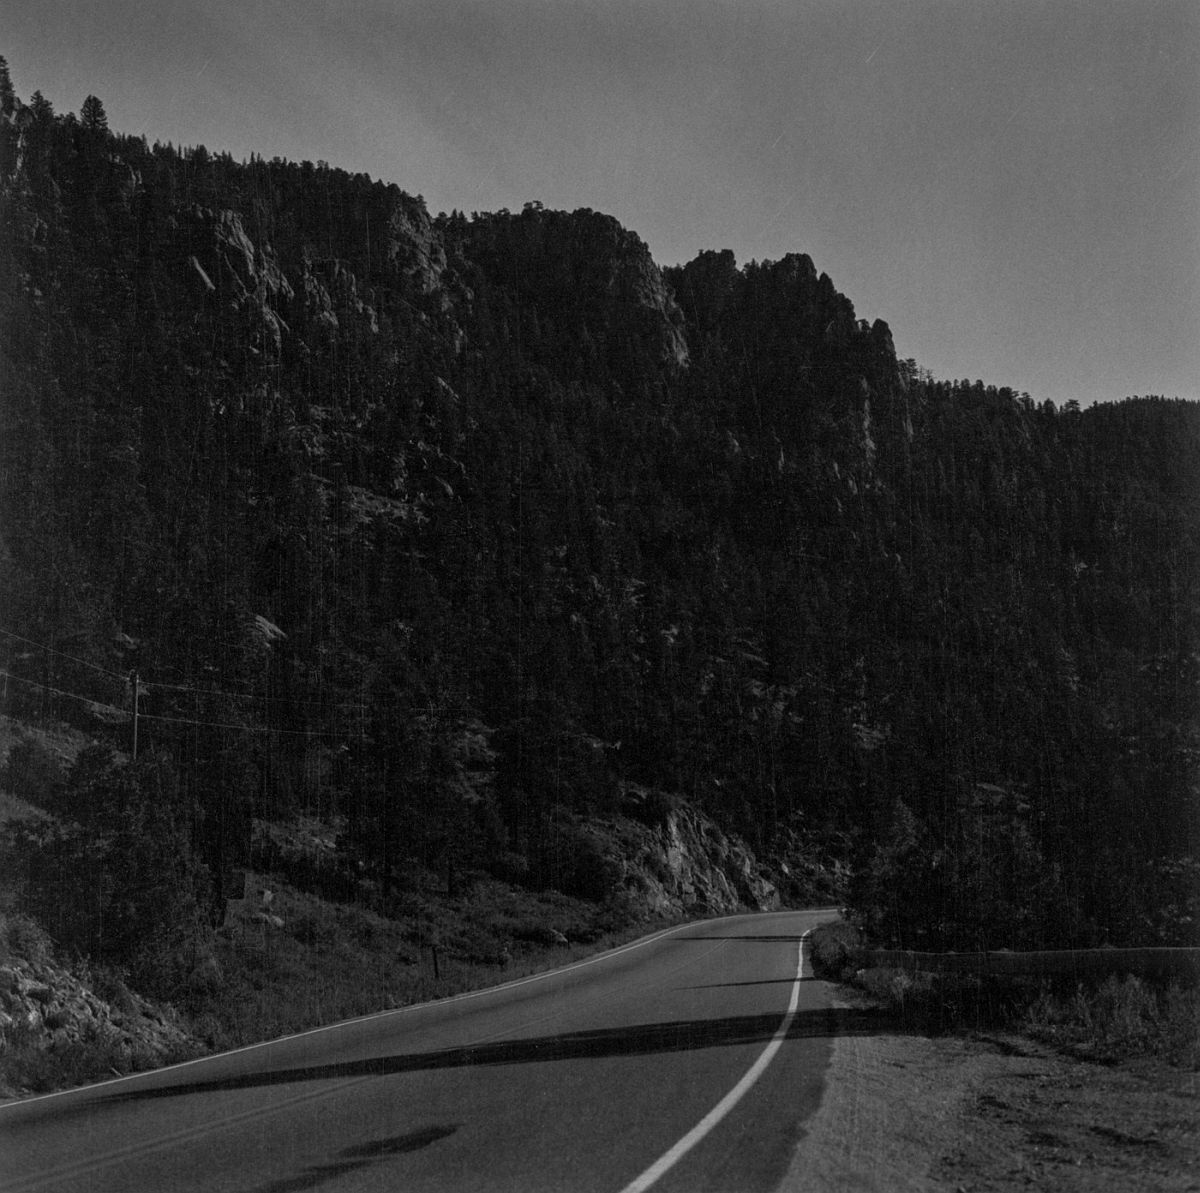 Larimer County, Colorado, 1AM, moonlight, 1981